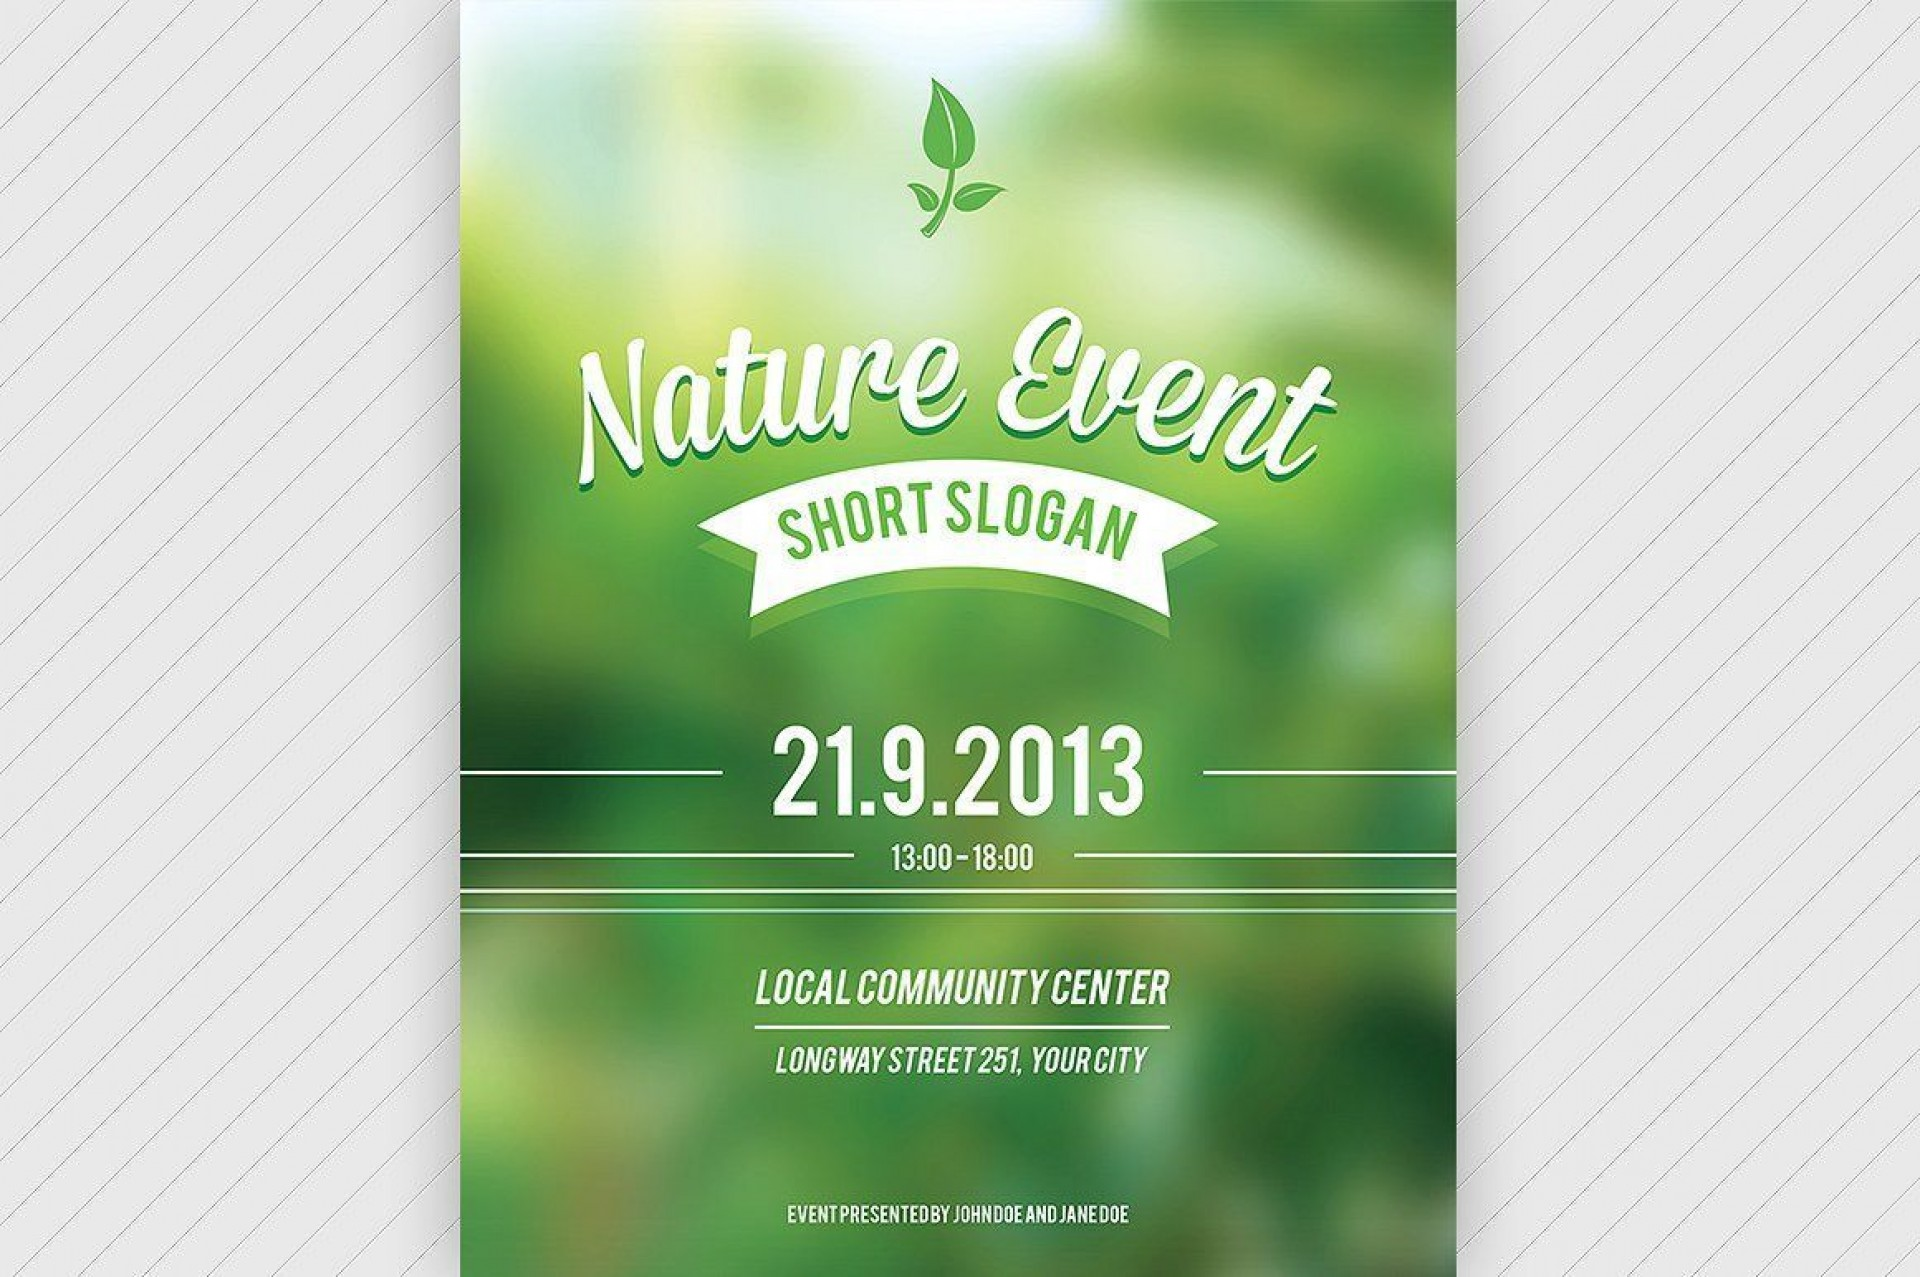 004 Unique Free Event Flyer Template Word Image  Microsoft1920